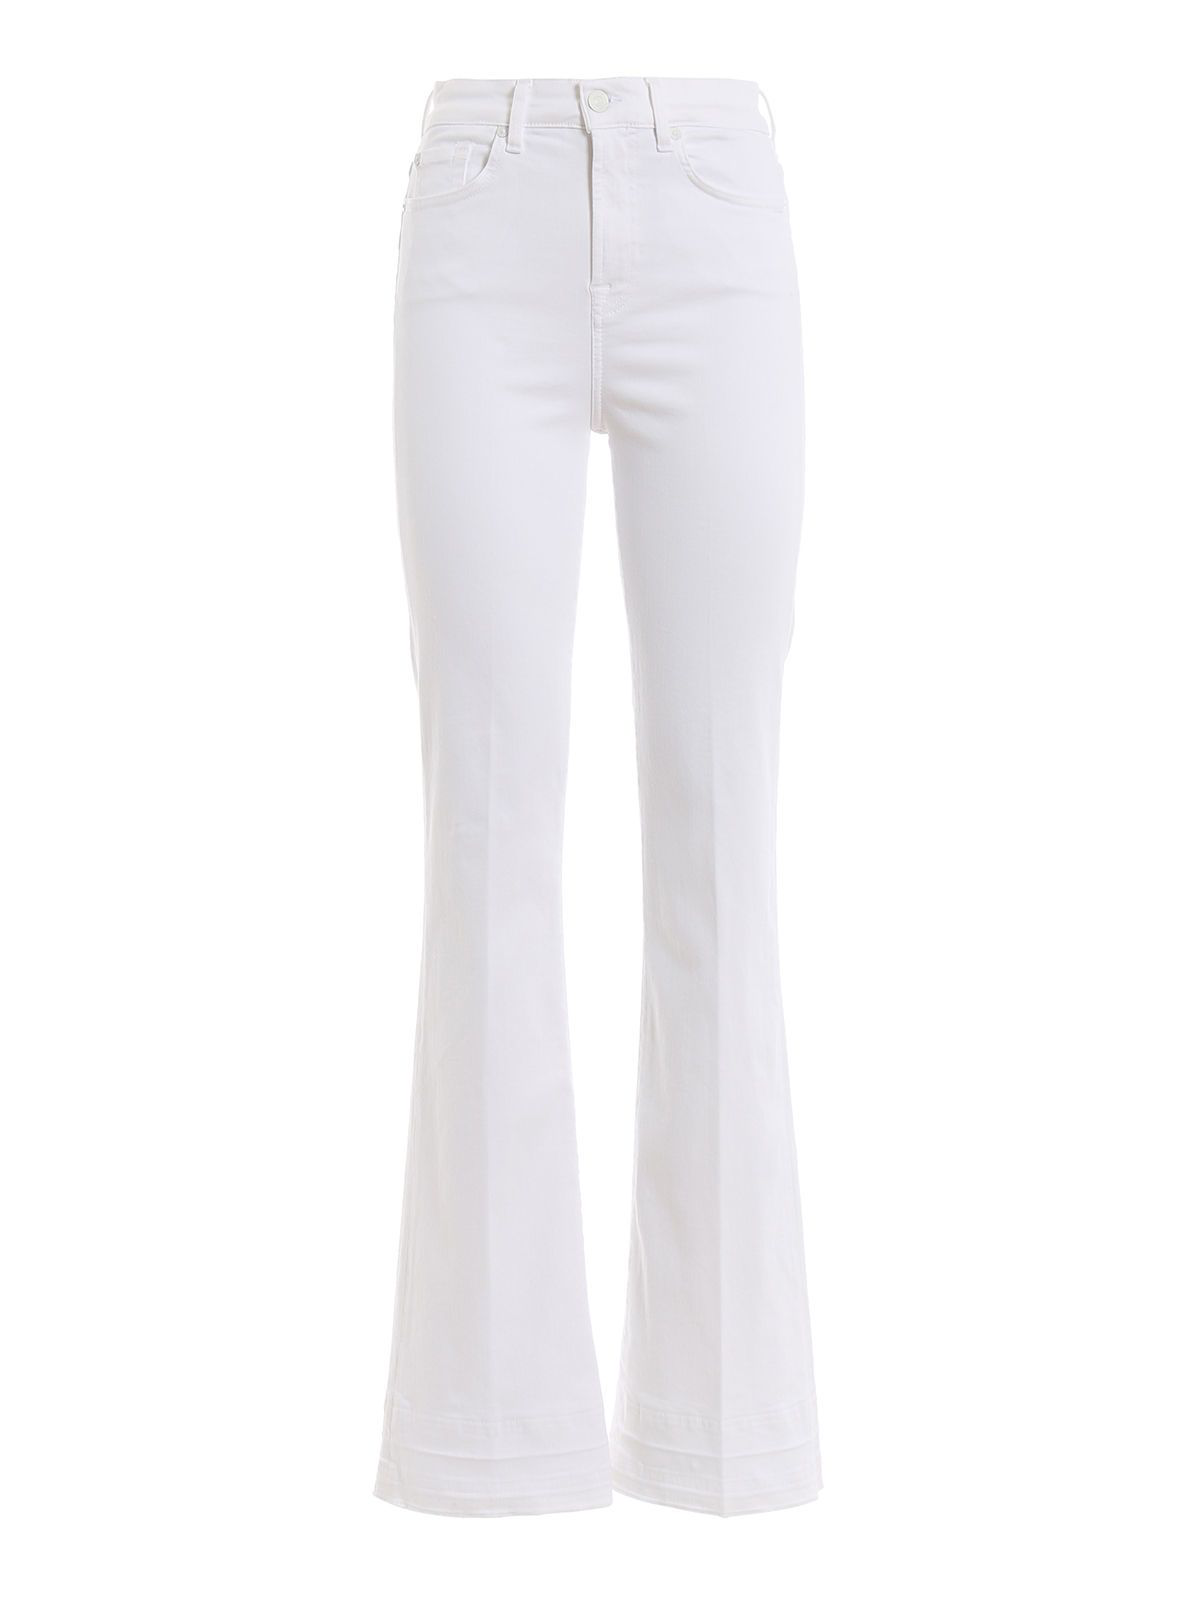 7 For All Mankind Mid Rise Flared Jeans In White